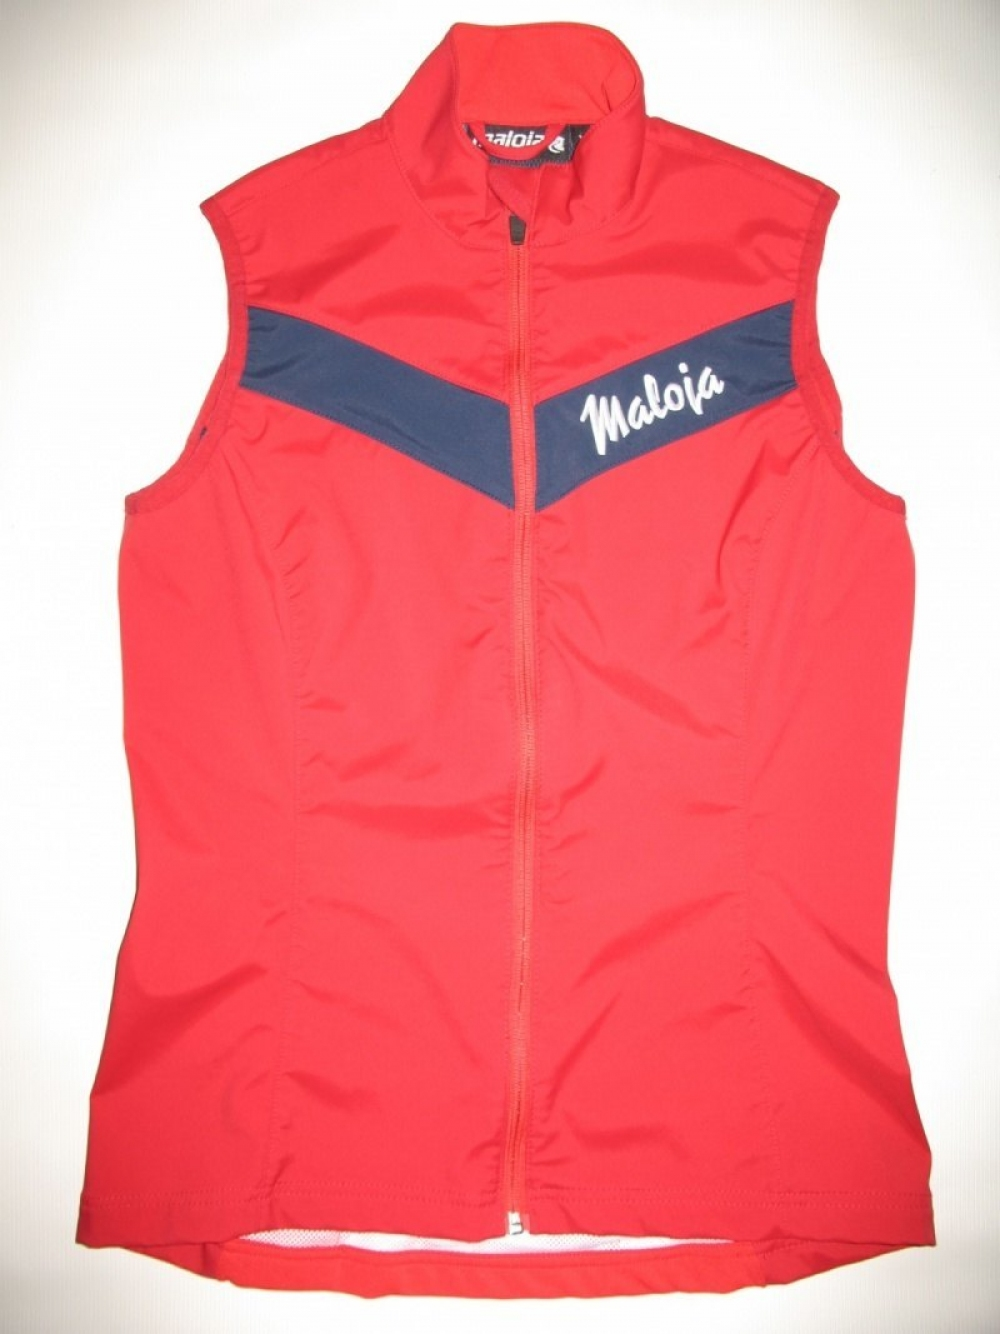 Футболка MALOJA softshell vests lady (размер M) - 17666